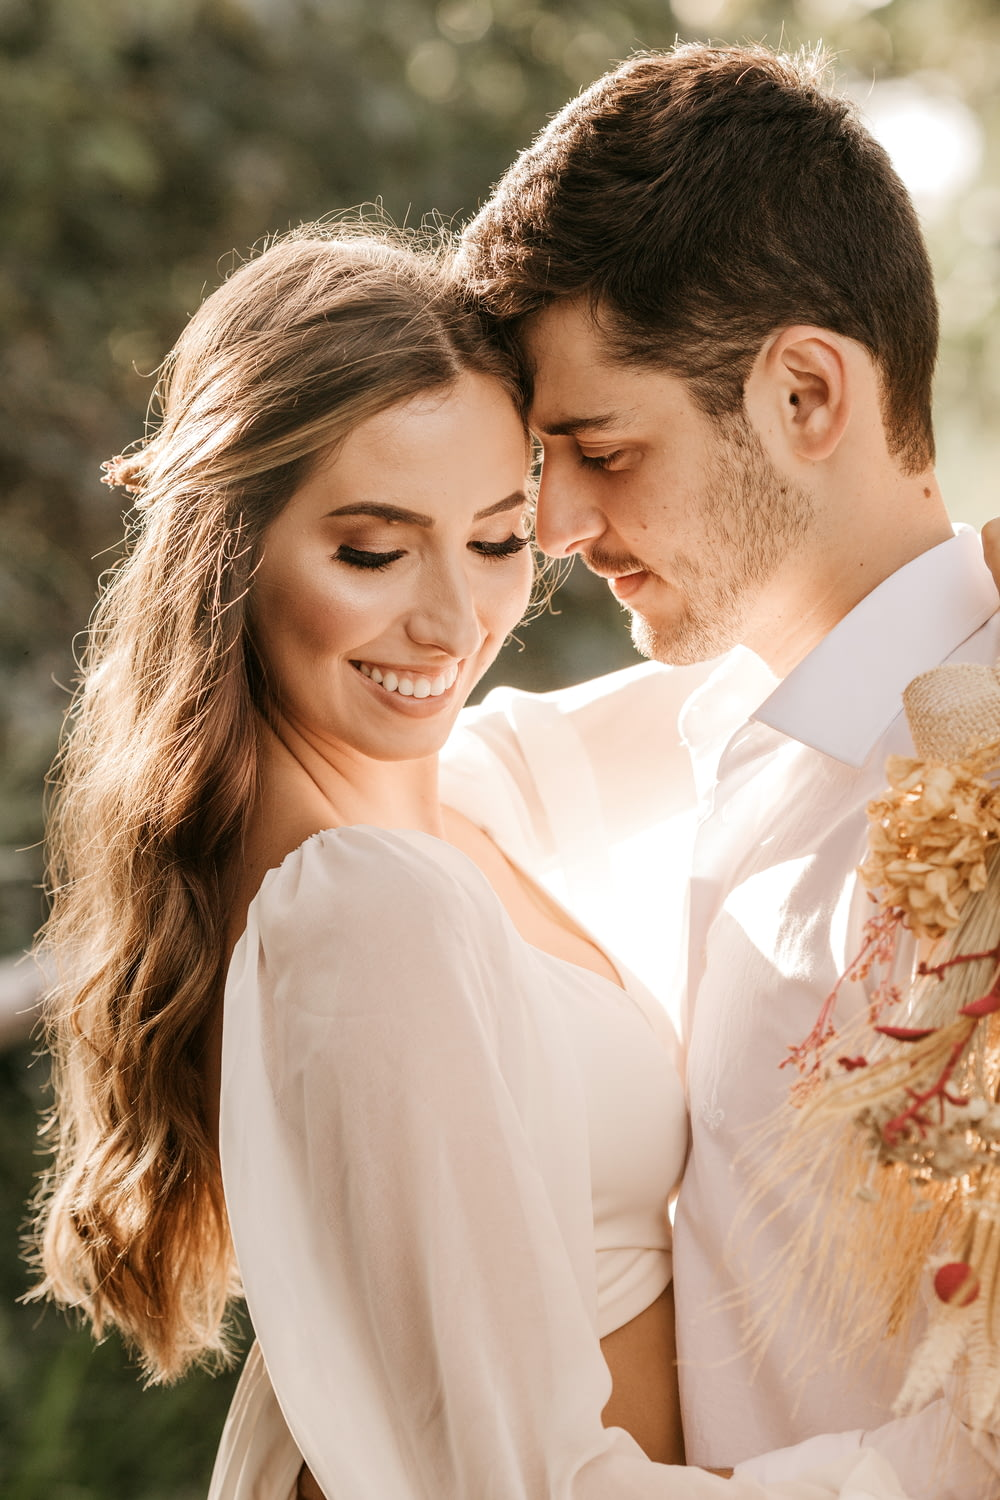 man in white suit kissing woman in white dress